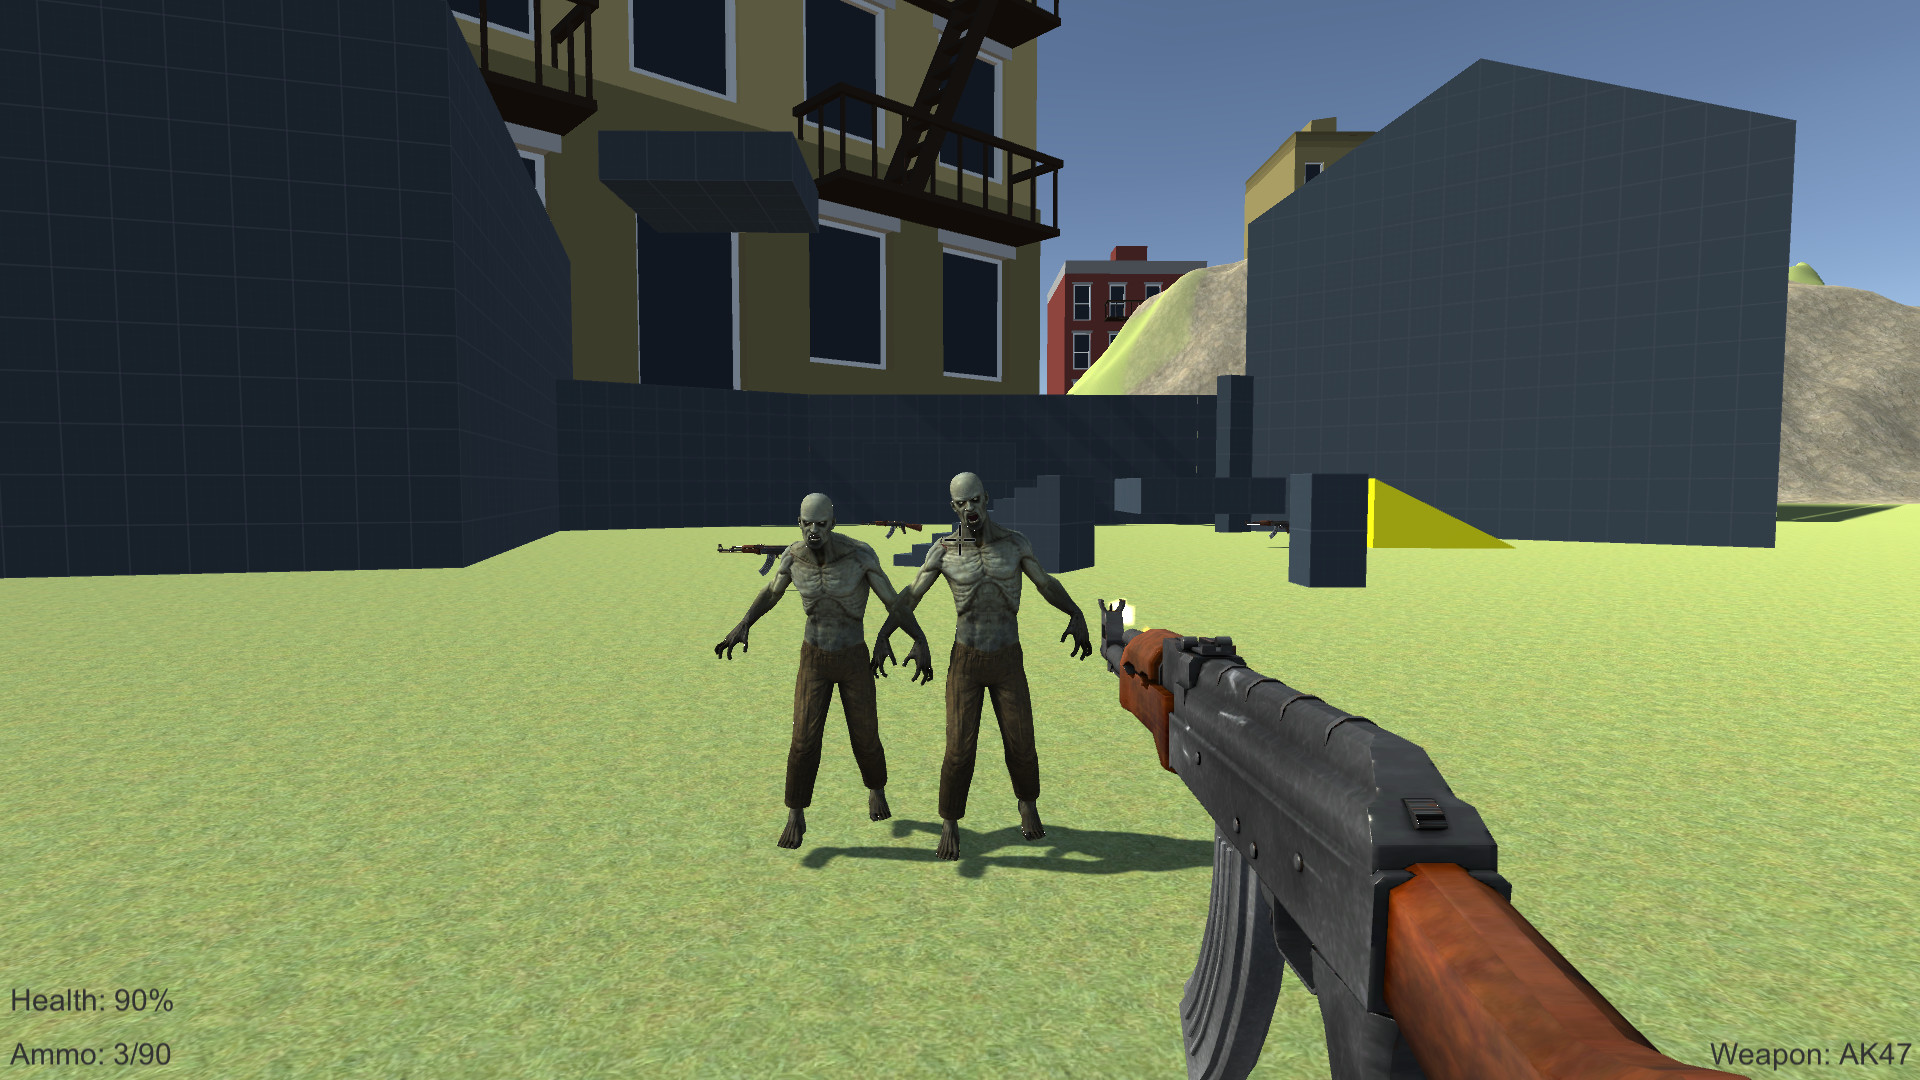 How to create a Multiplayer First Person Shooter (FPS)